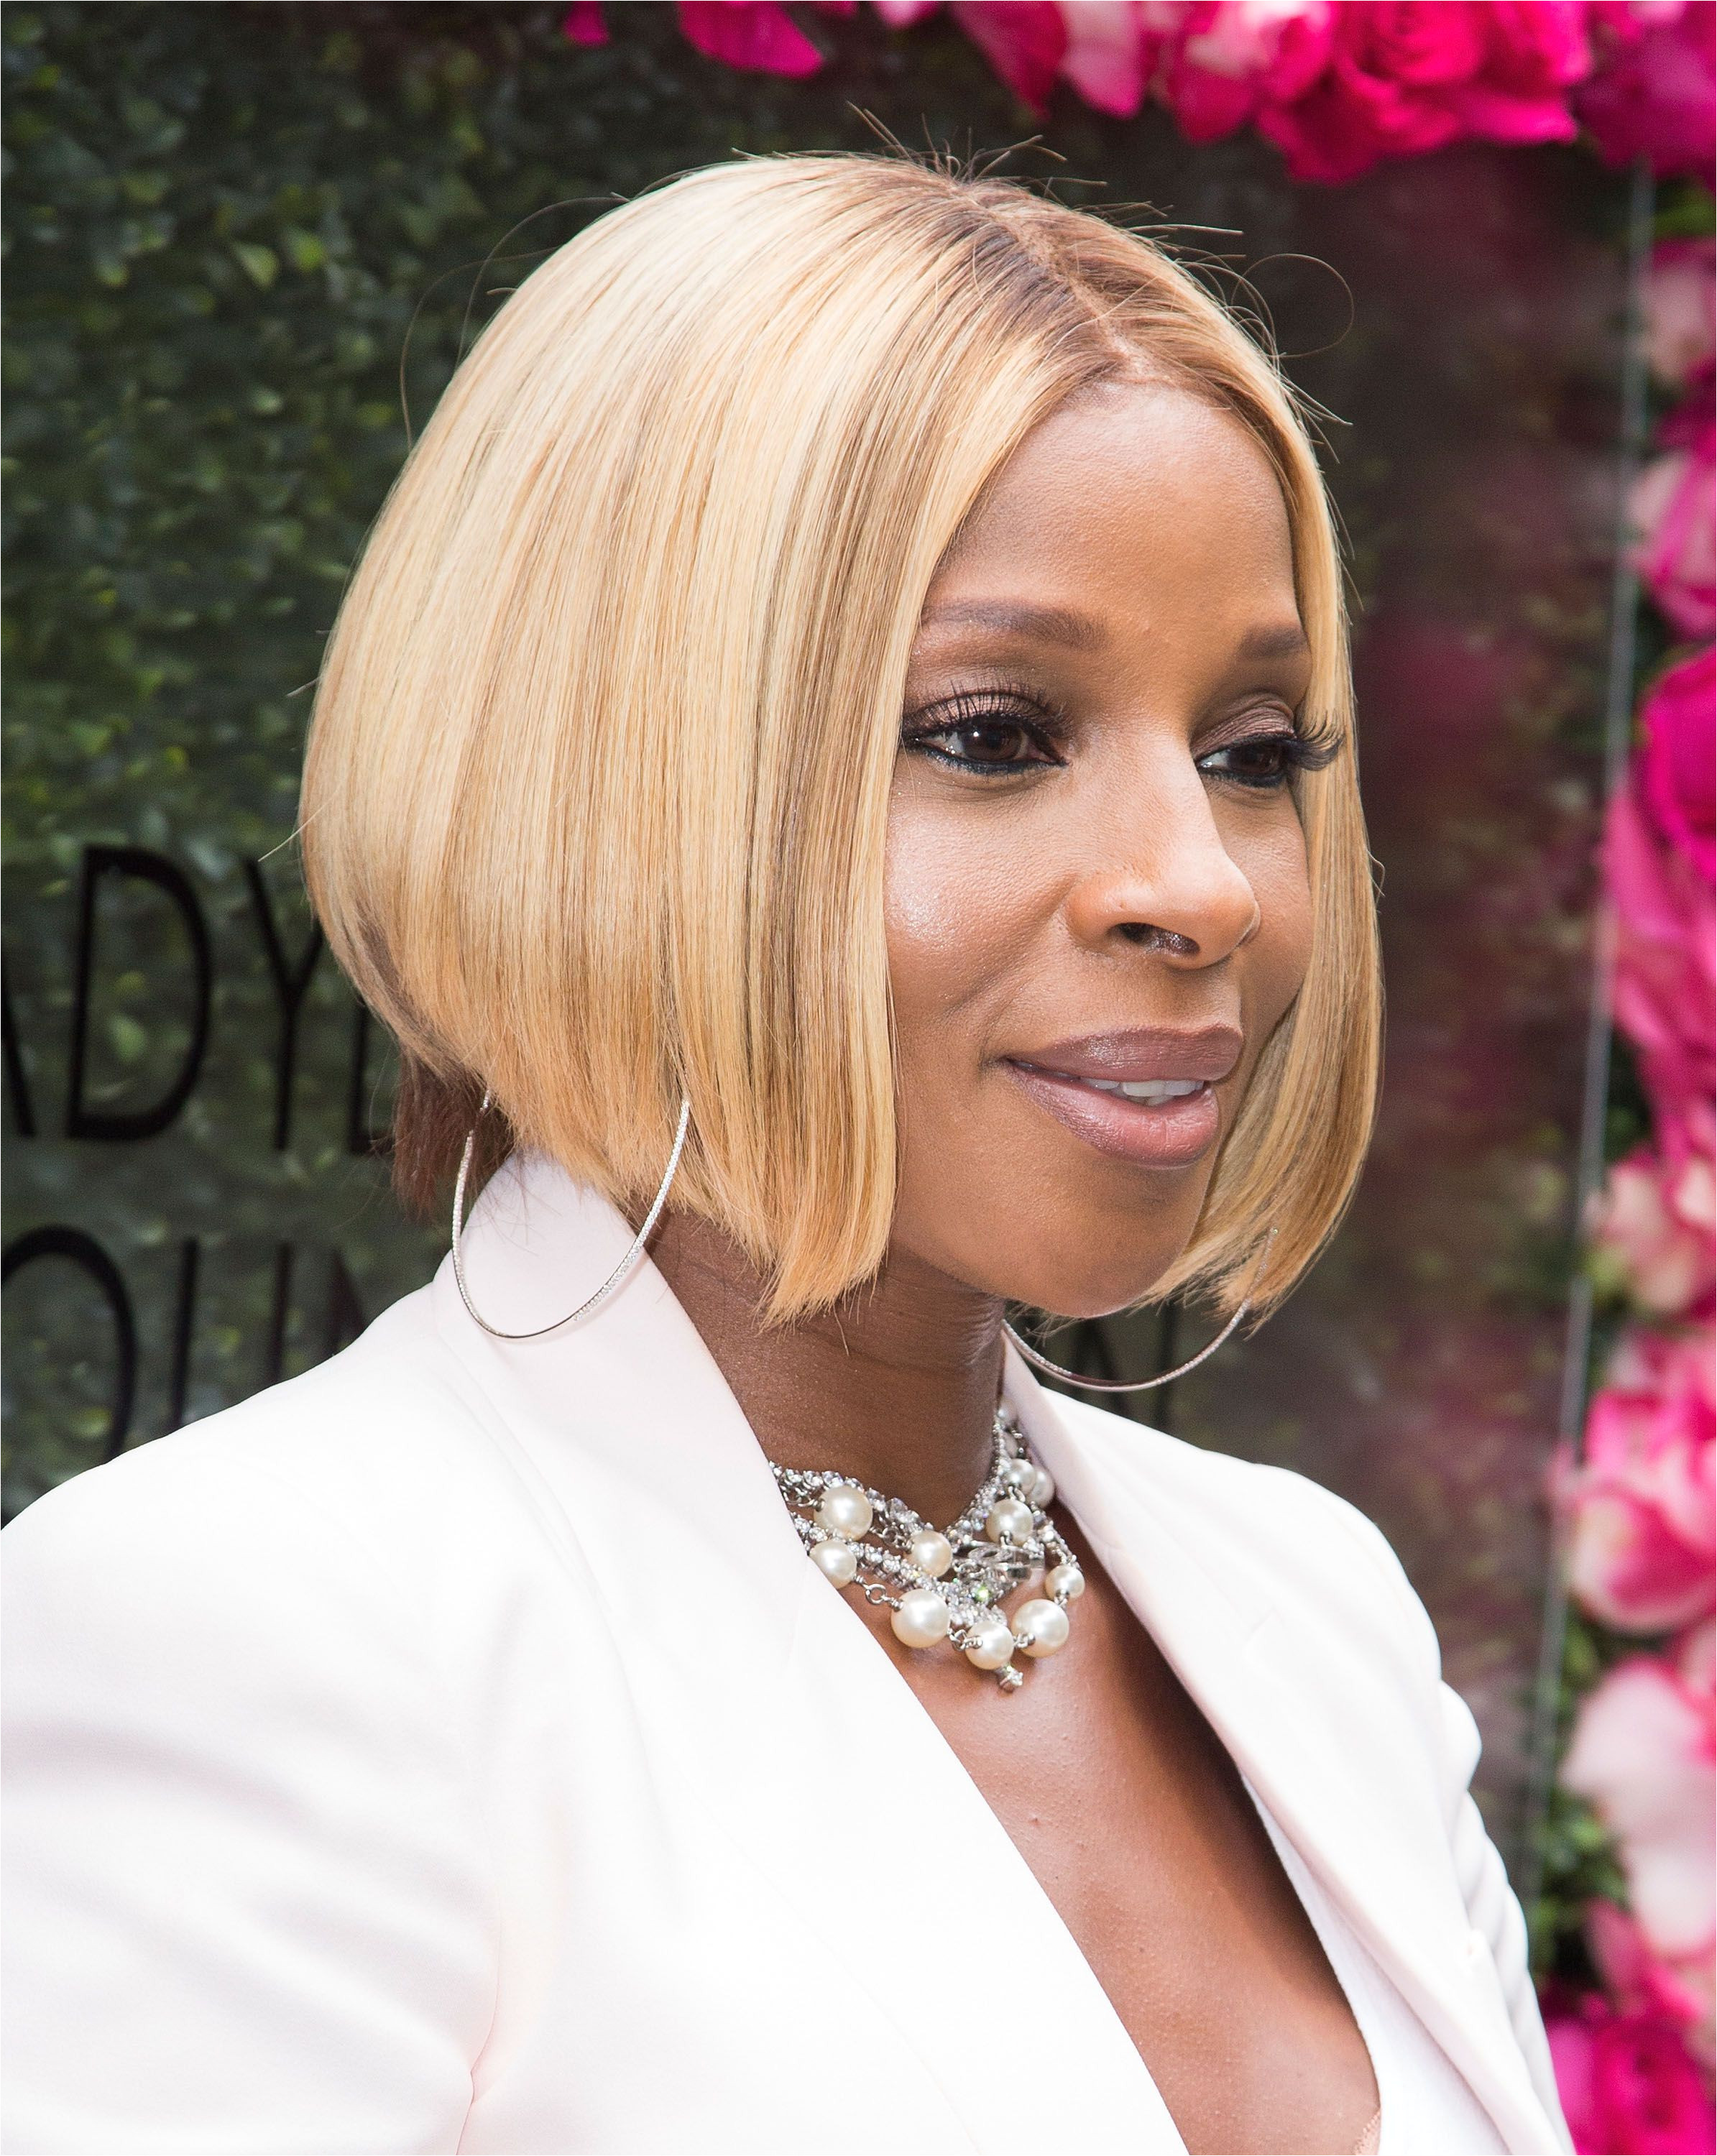 Image result for mary j blige hairstyle